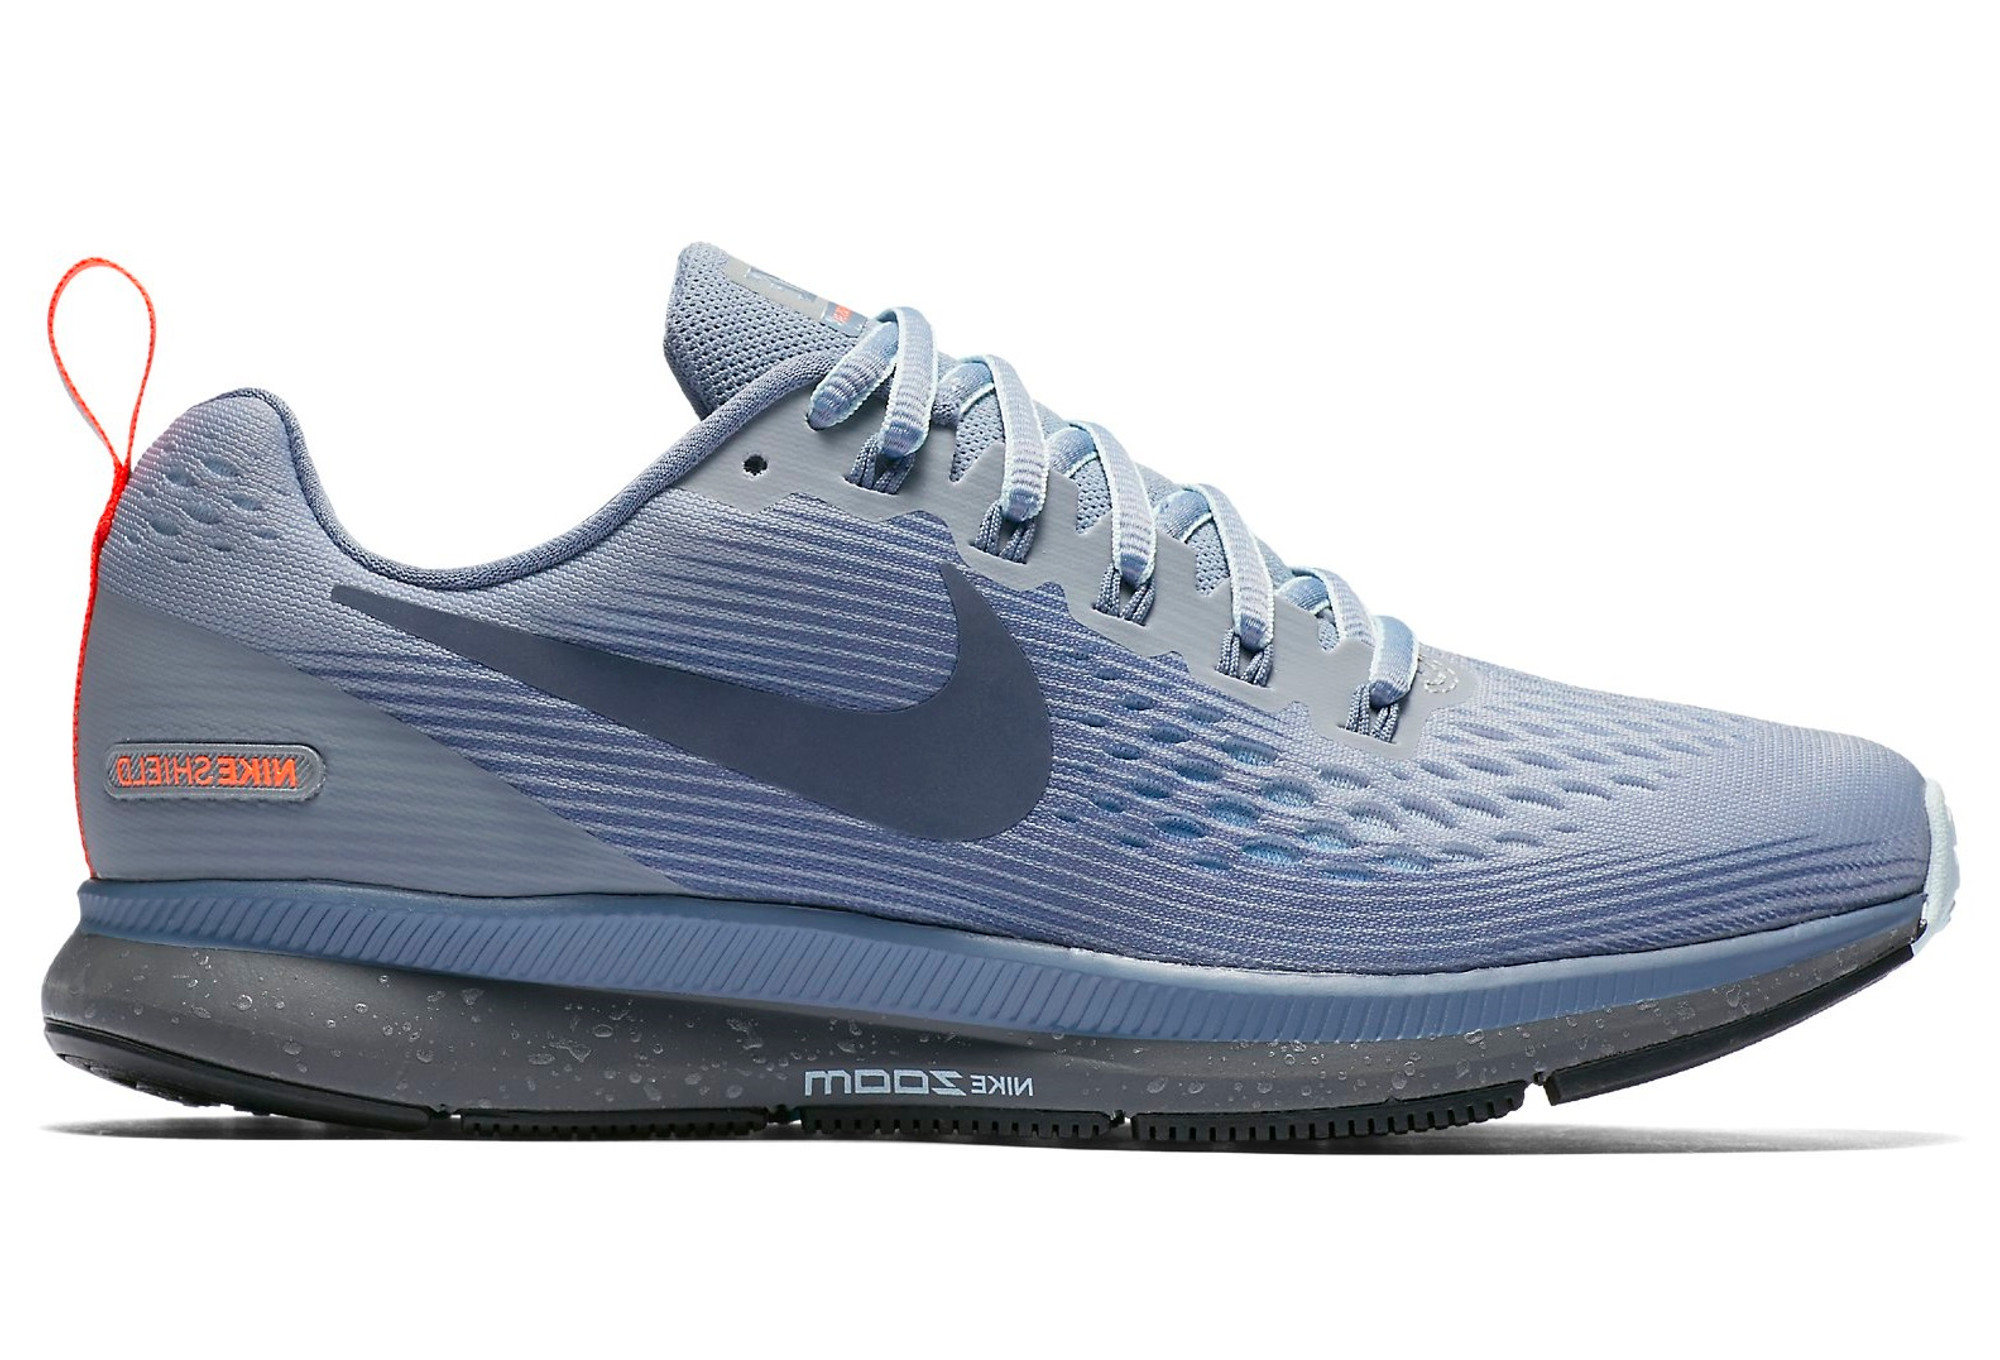 94337c7ef4a Nike Air Zoom Pegasus 34 Shield Grey Blue Women